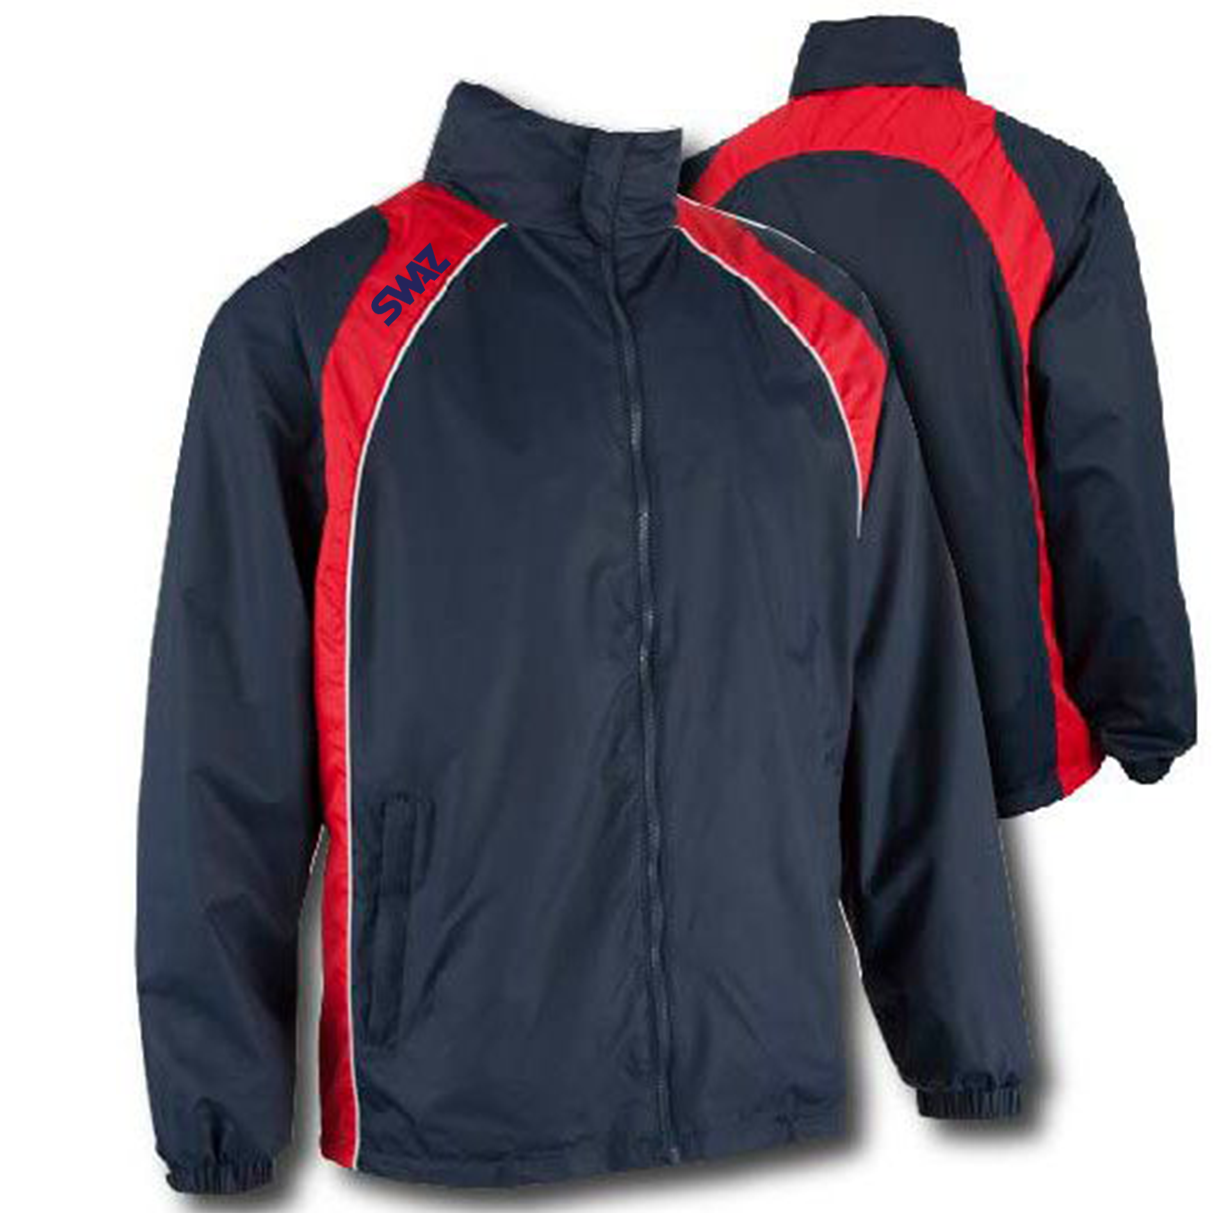 15 SWAZ Showerproof Jackets – Navy/Red